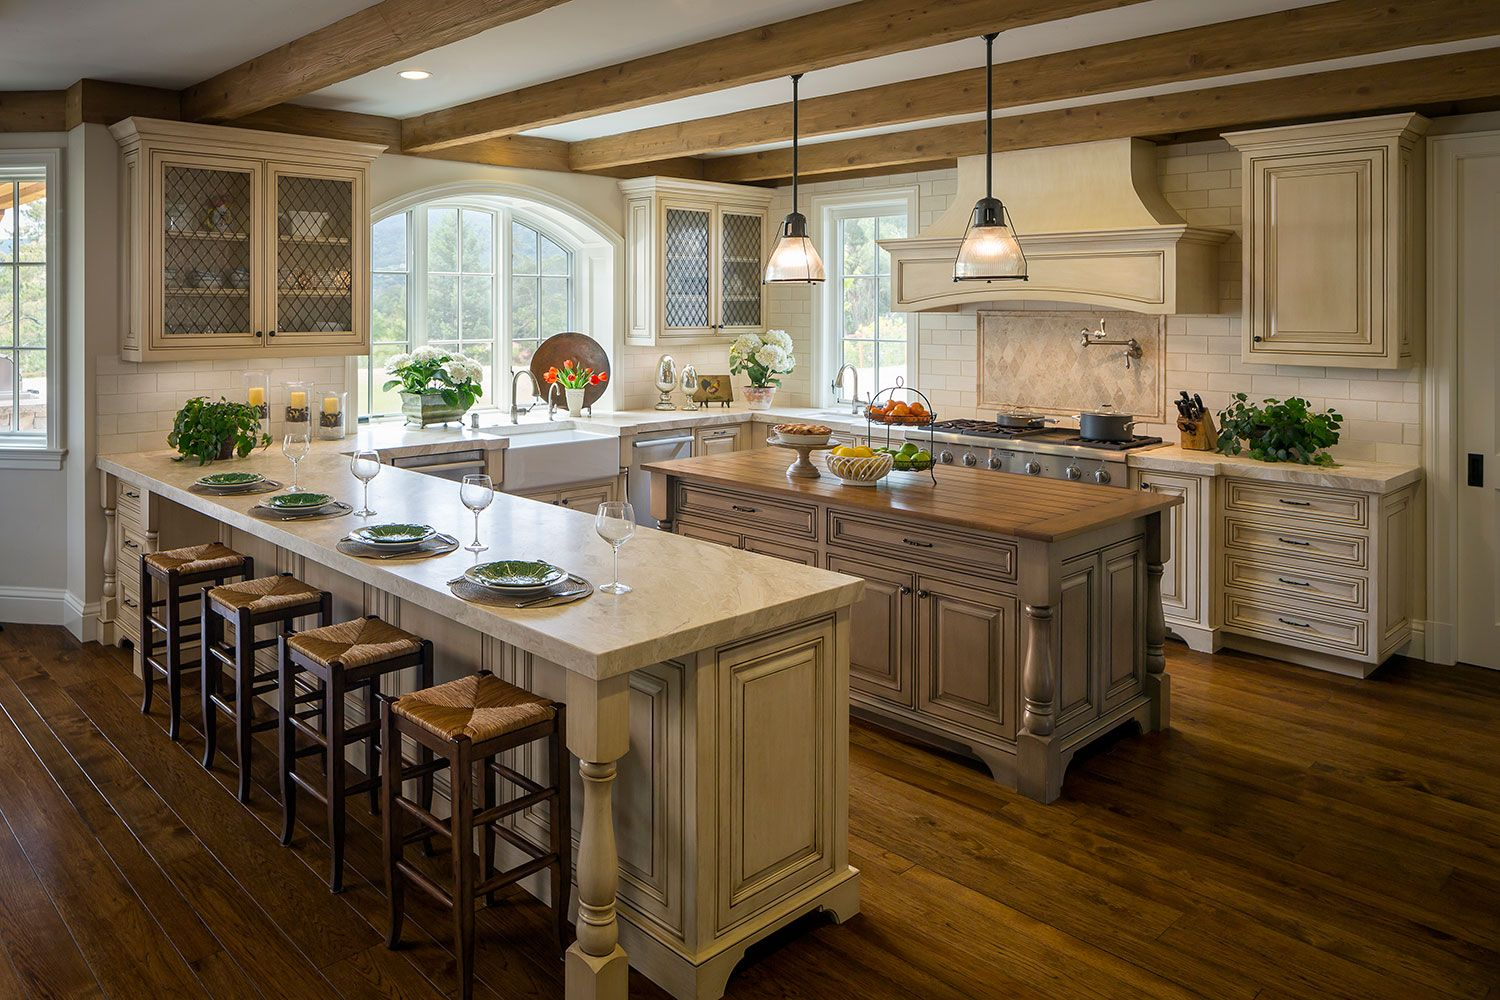 French country kitchen, exposed beams, subway tile, cream cabinets ...